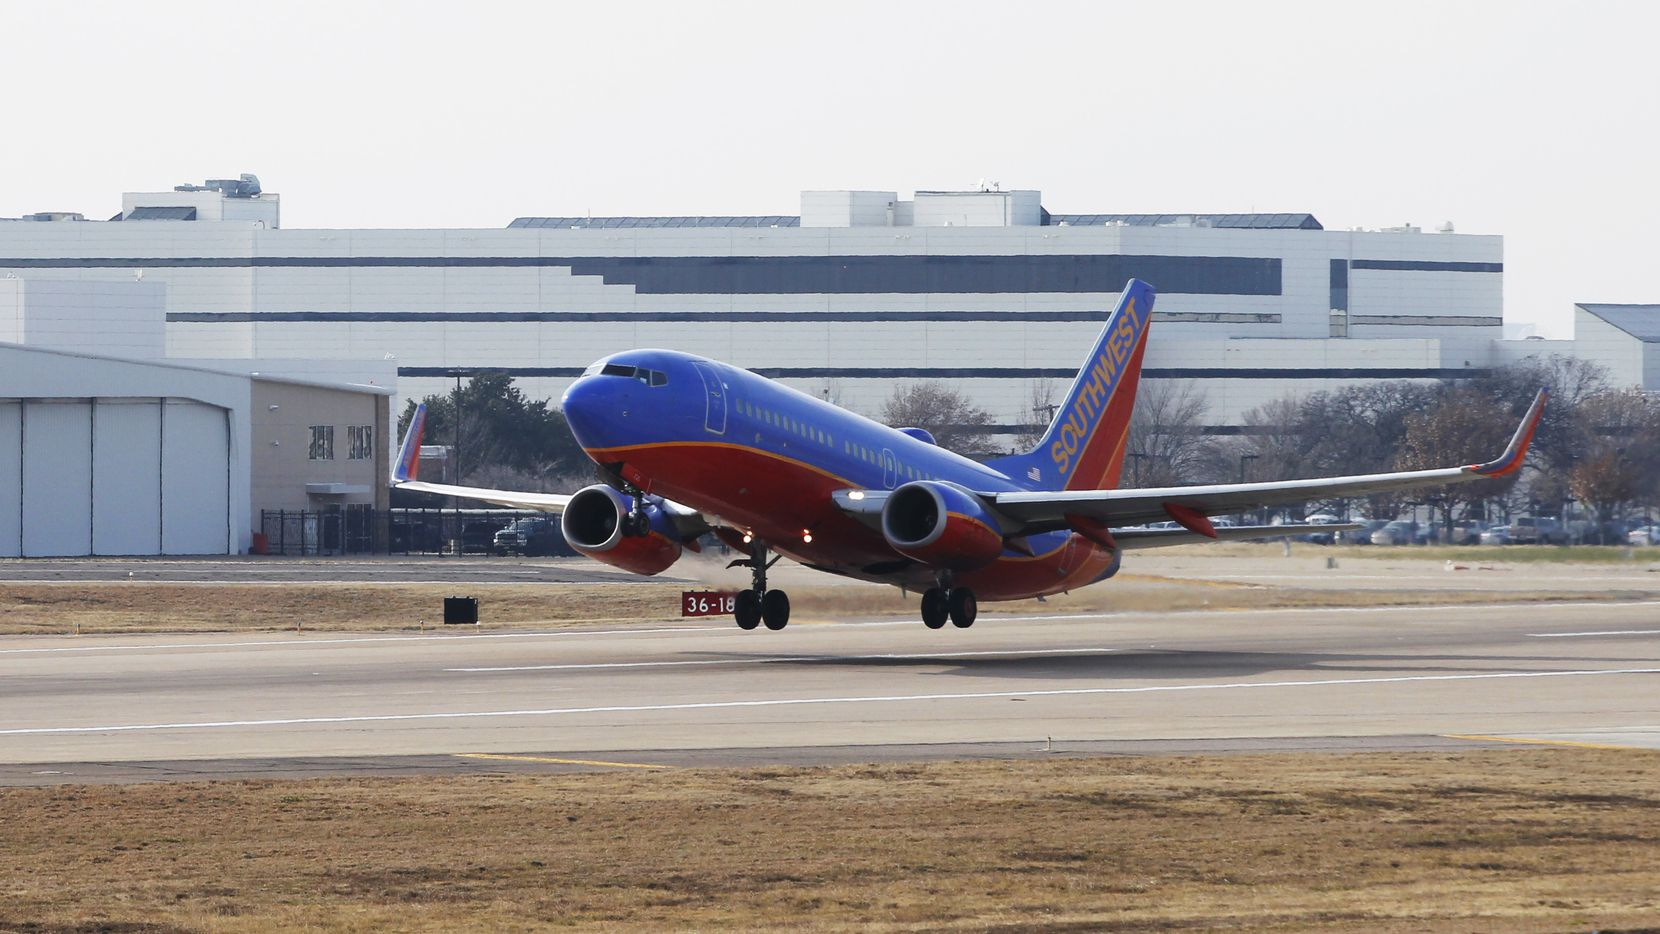 A Southwest Airlines jet takes off in front of corporate headquarters at Dallas Love Field.